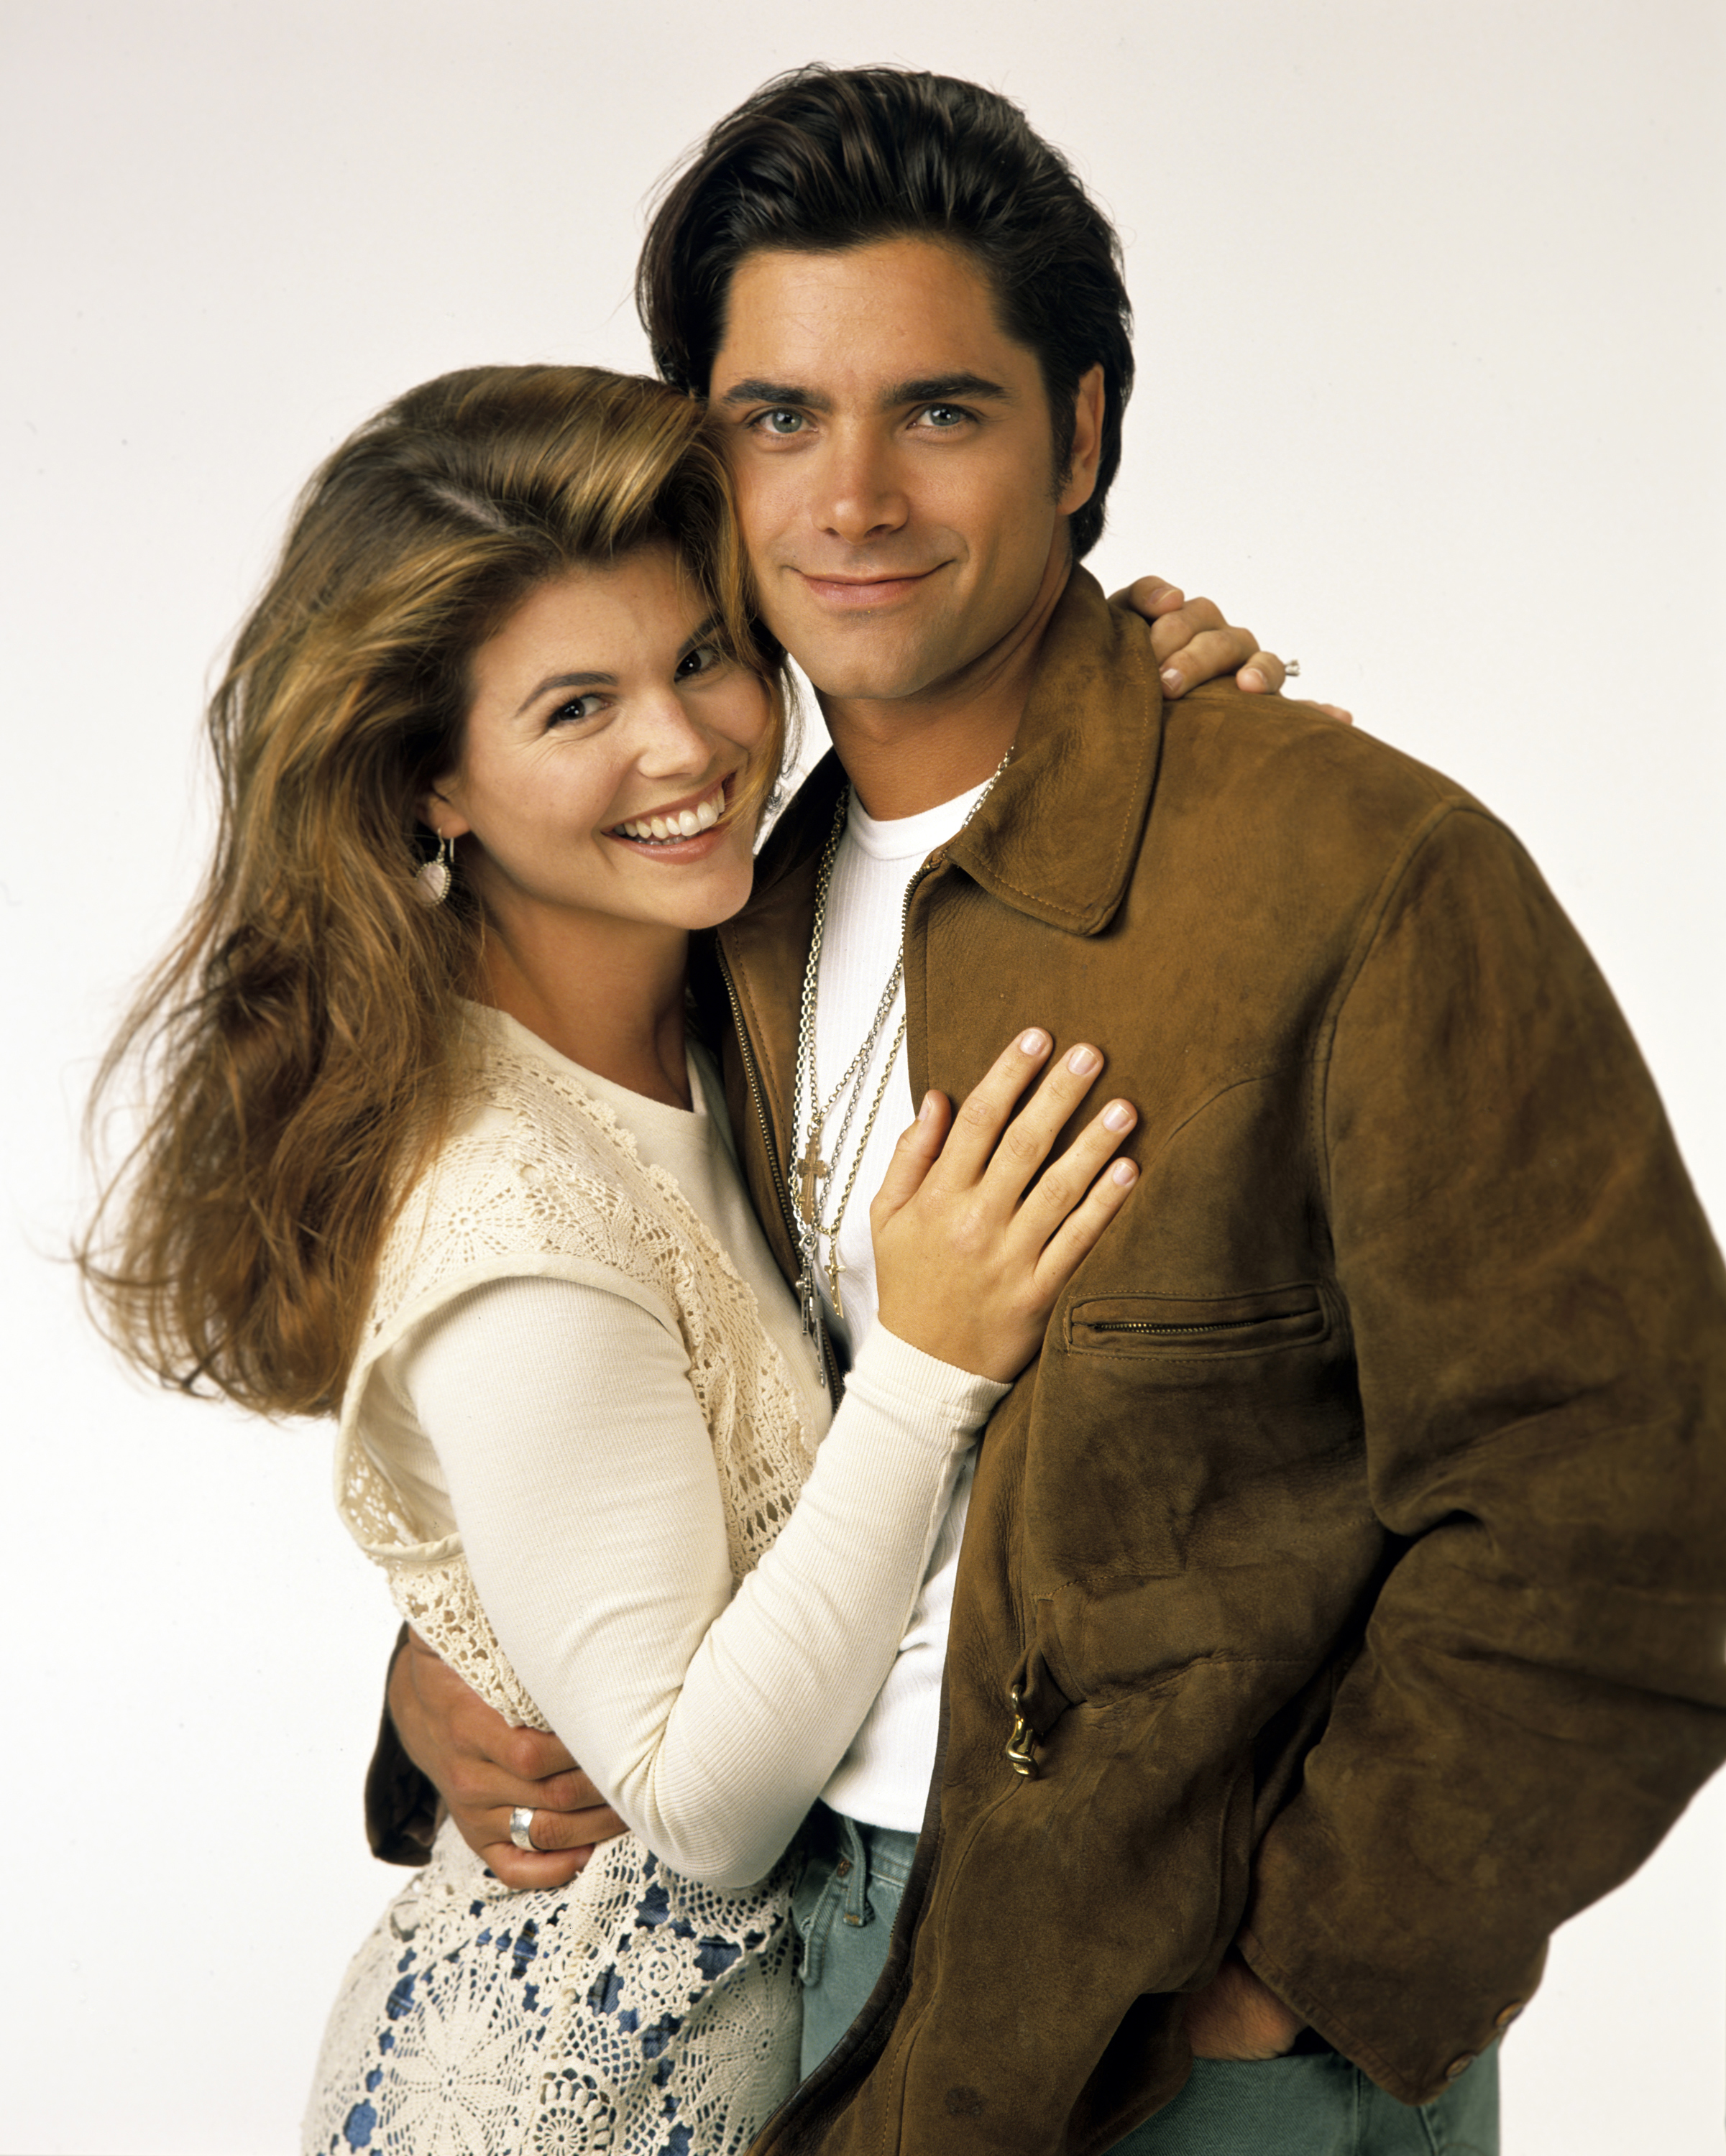 Lori Loughlin (Rebecca) and John Stamos (Jesse), on Sept. 14, 1993.